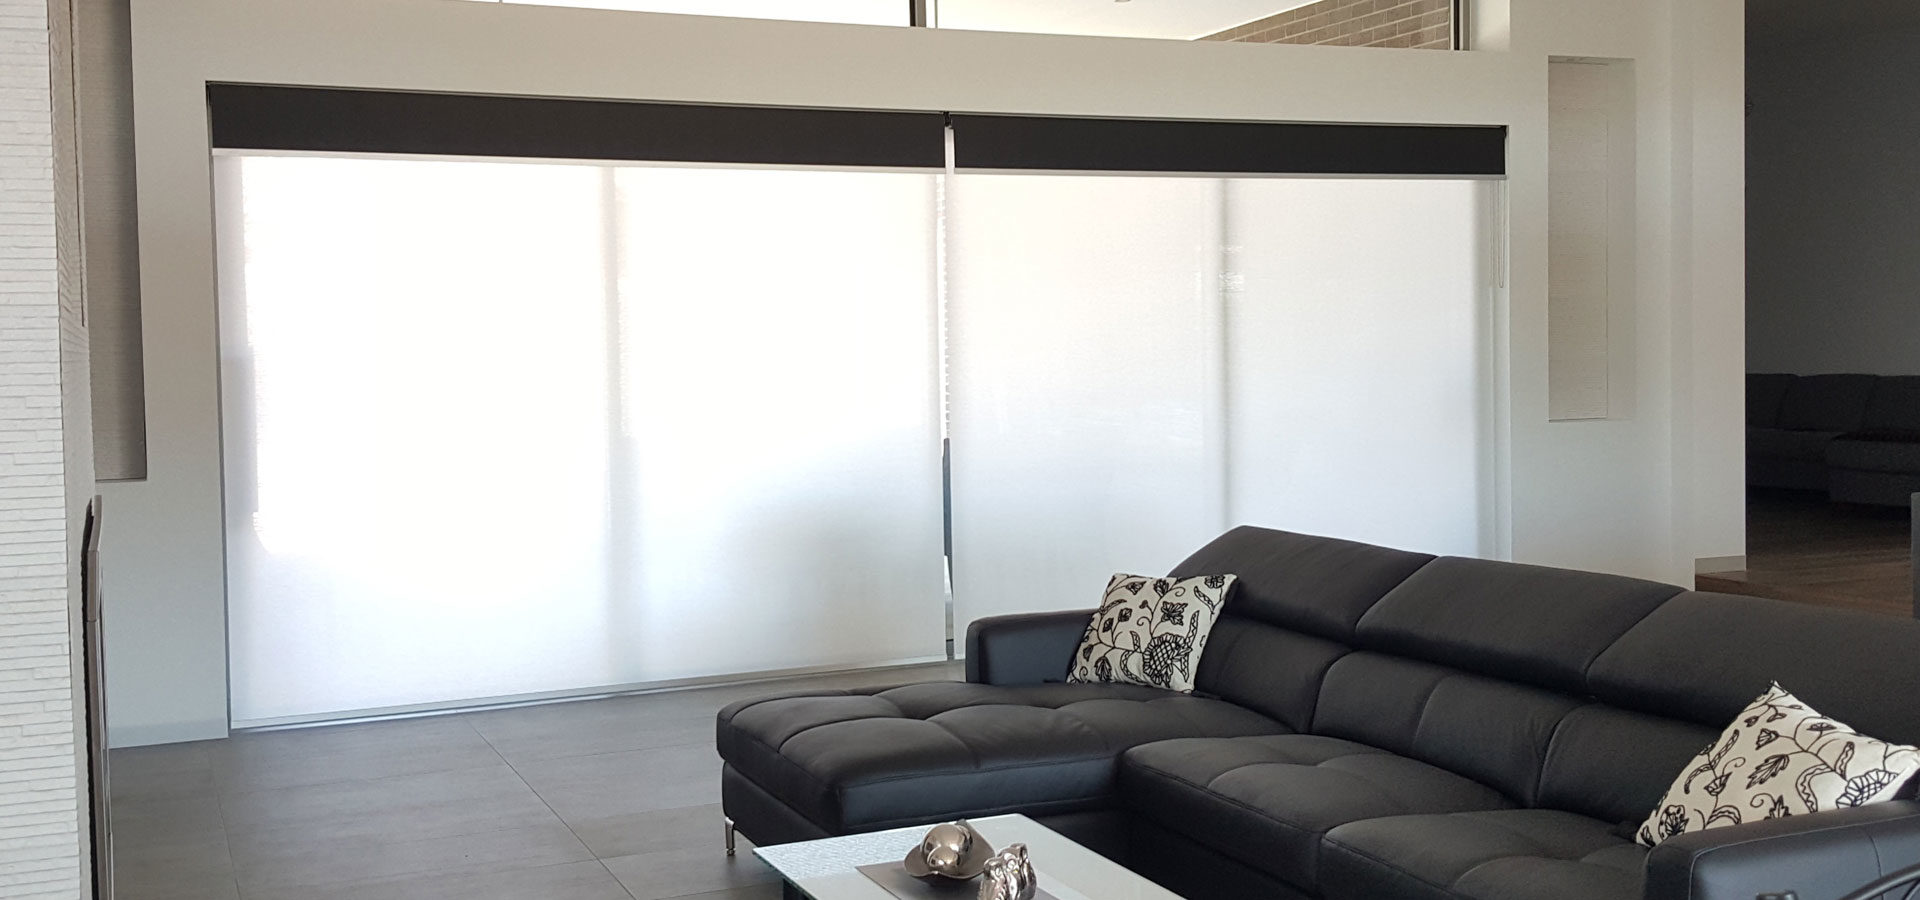 Affordable Curtains and Blinds